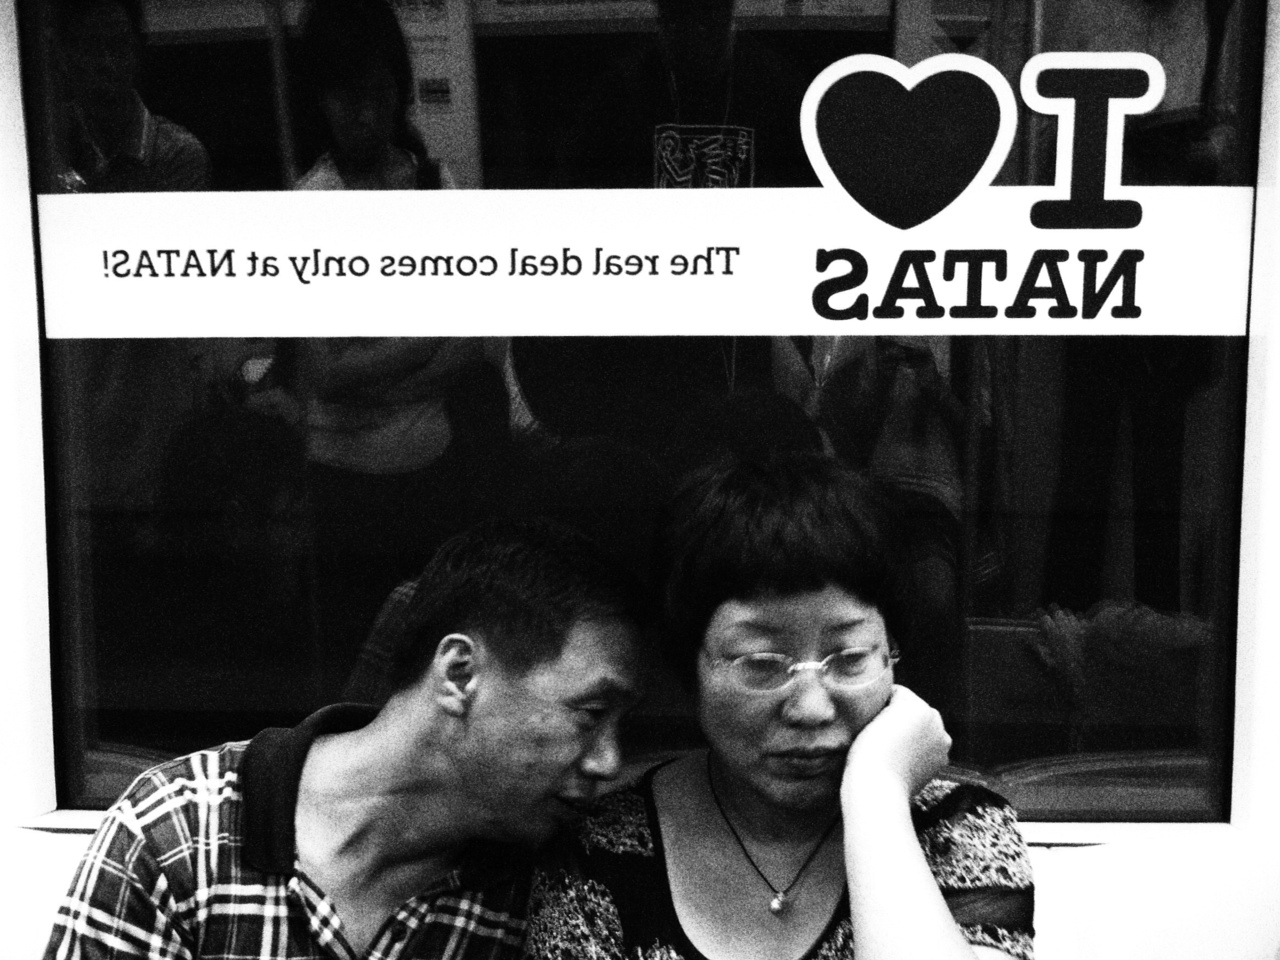 """I ❤ Satan"" © Aik Beng Chia 2012. All rights reserved."